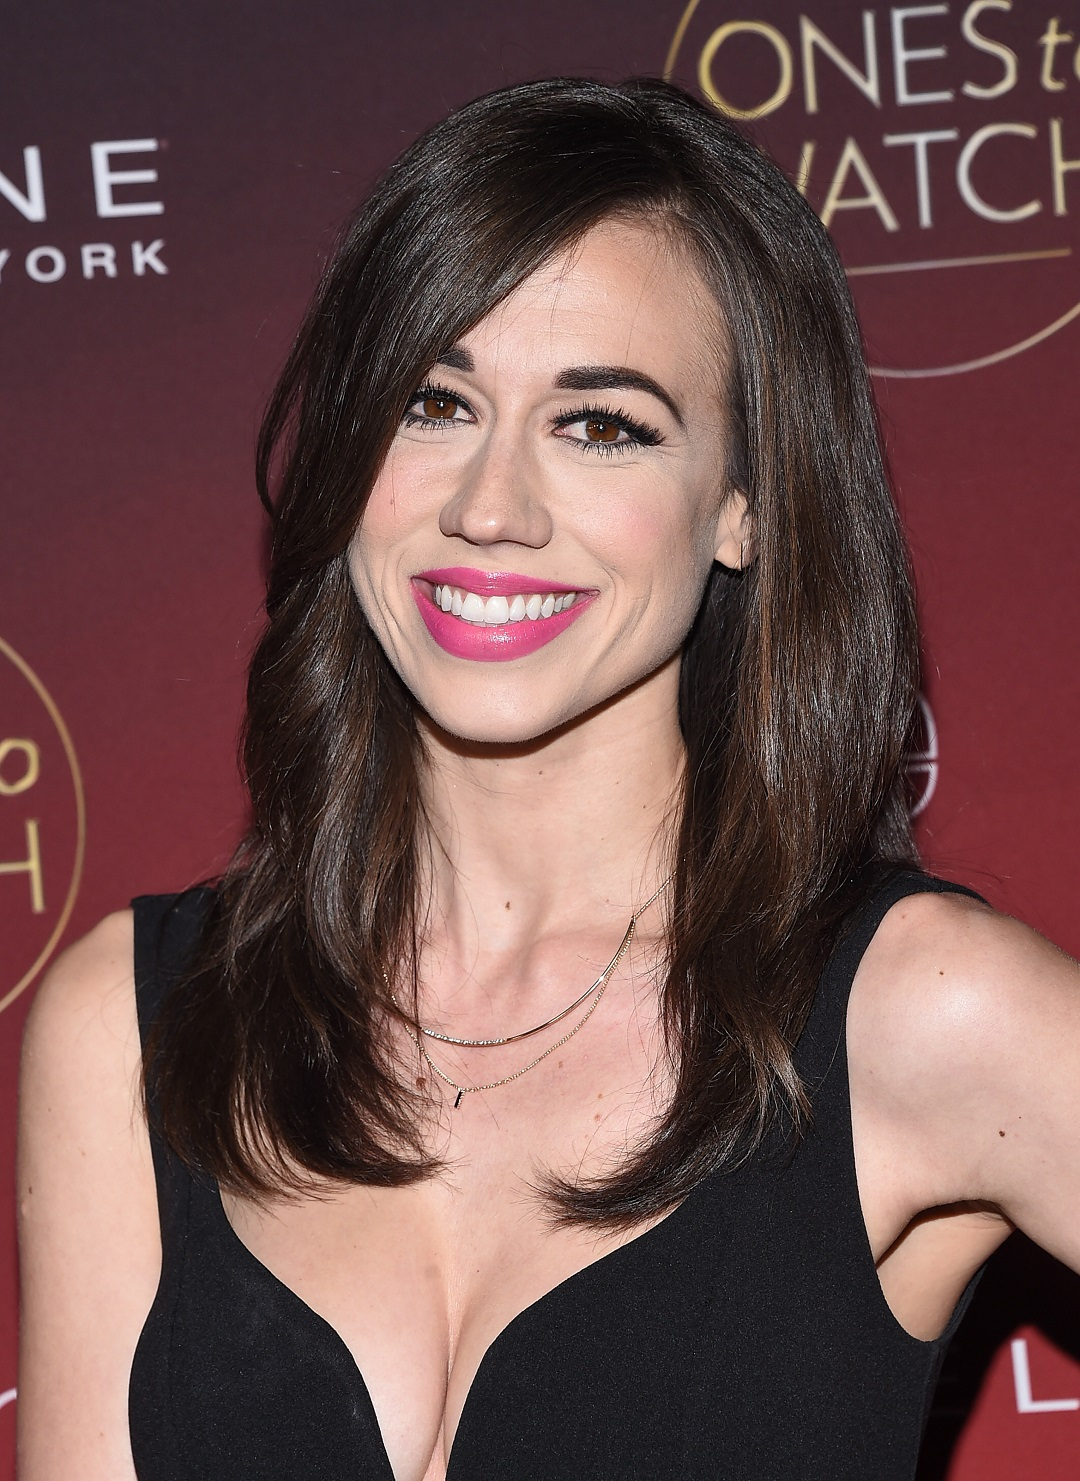 YouTube Star and Singer Colleen Ballinger